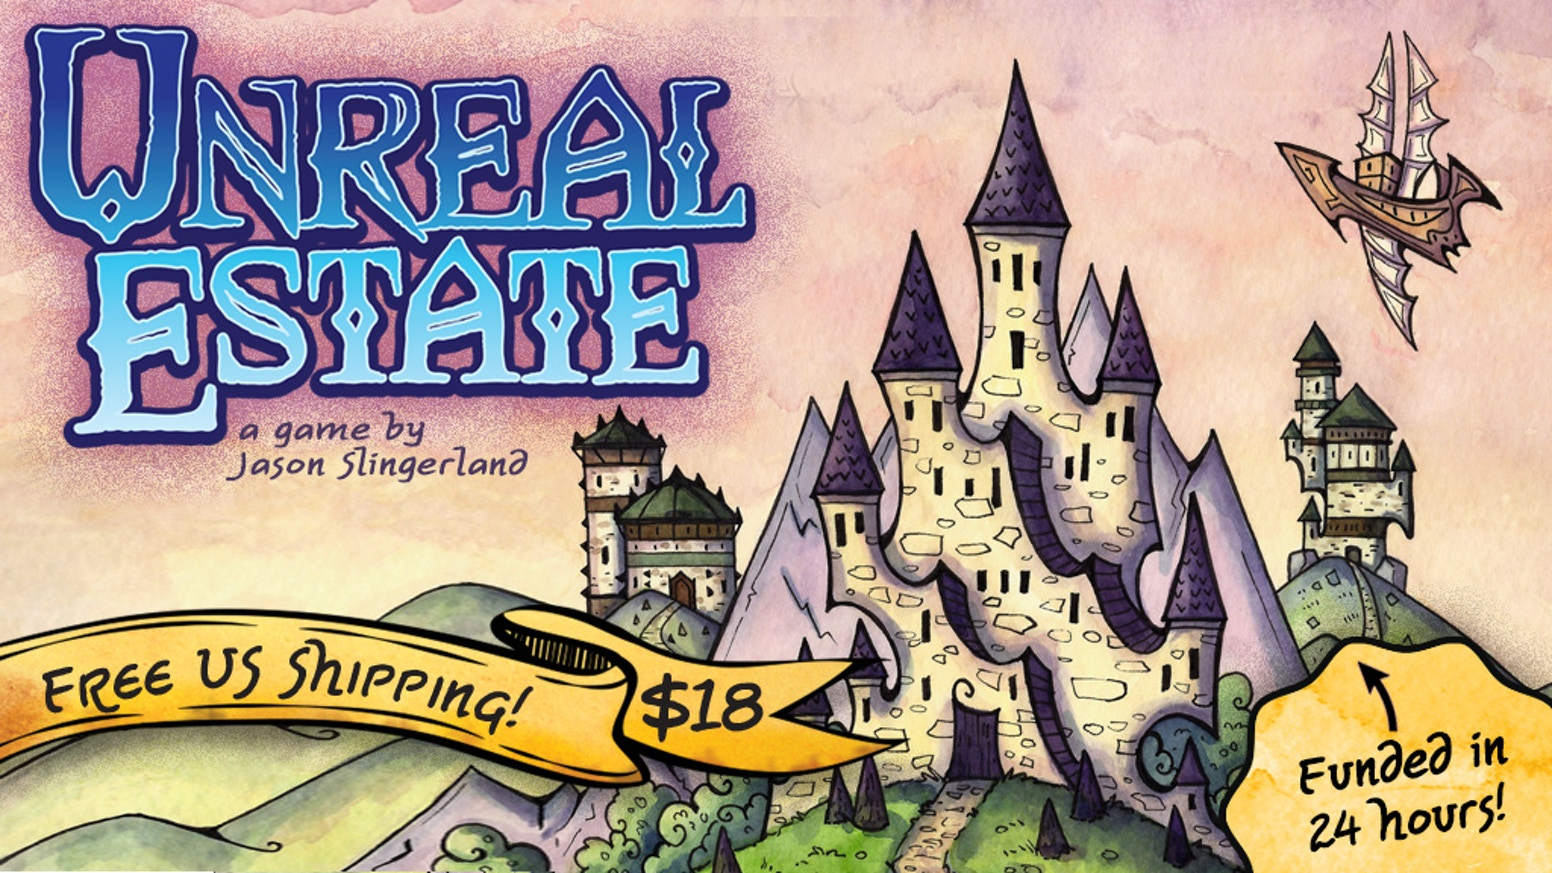 Prove your skills and fill the land with fantastical buildings through drafting, set collection, and timing in this 2-4 player game!